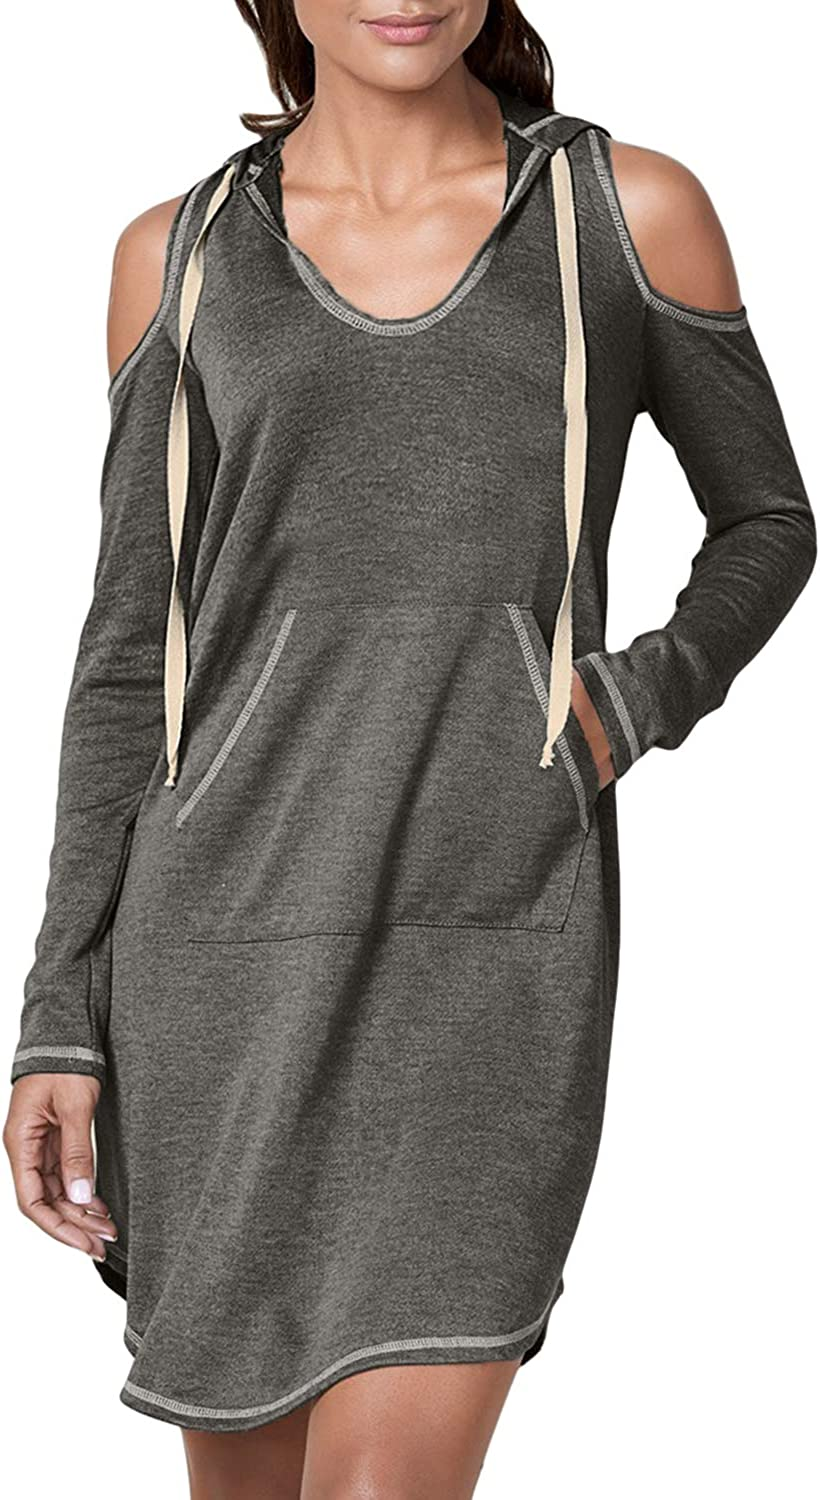 Sidefeel Women Casual Long Sleeve Cold Shoulder Drawstring Hooded Dress Medium Grey